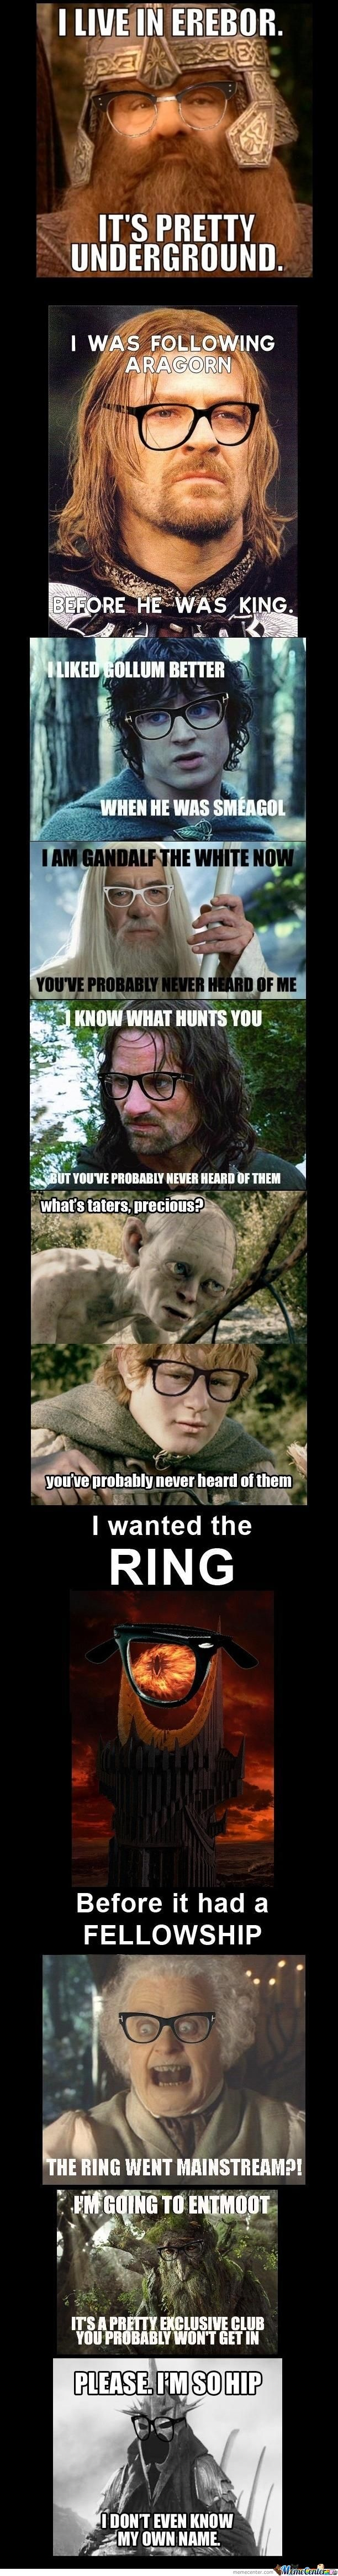 Hipster Lord of the Rings....BAHAHAHA